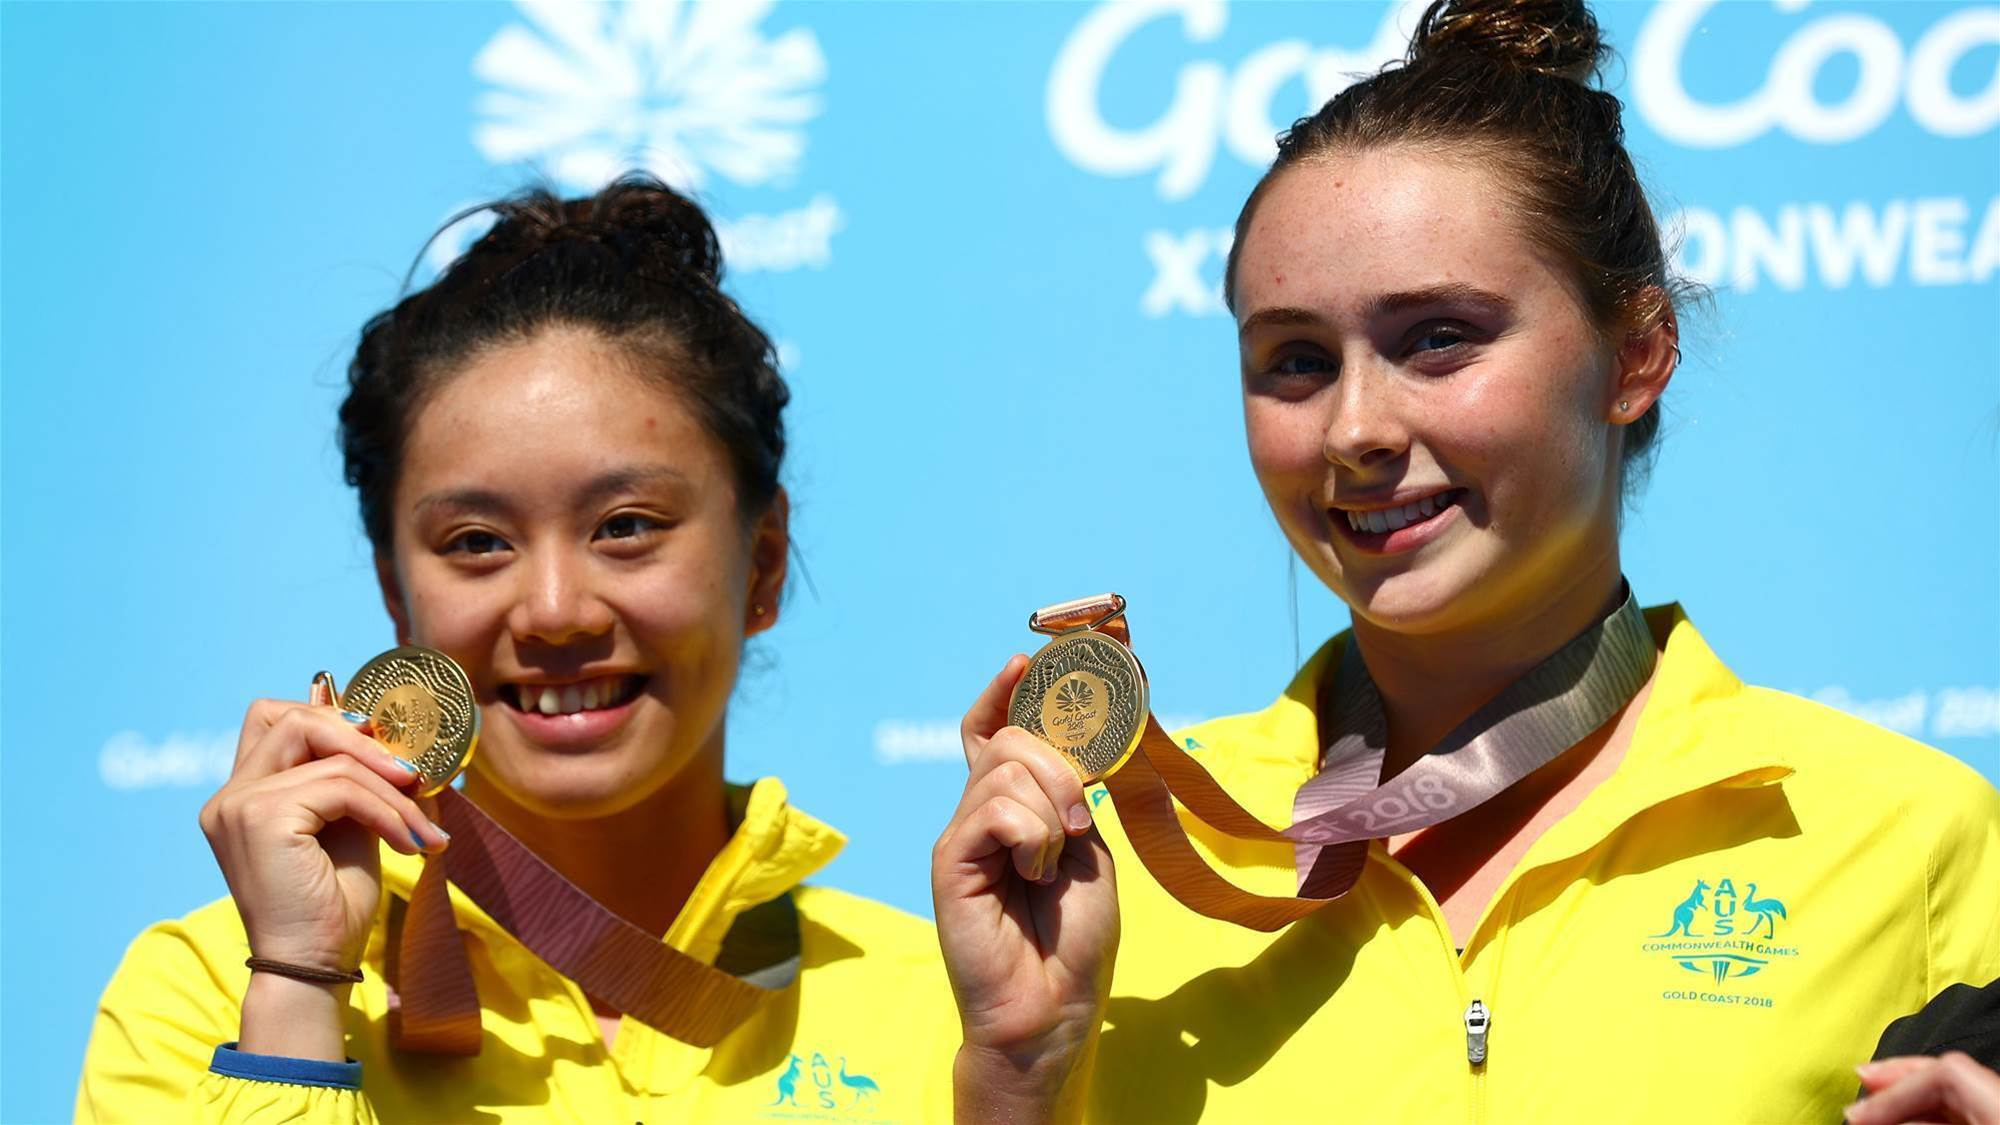 Golden dive for Qin and Sheehan